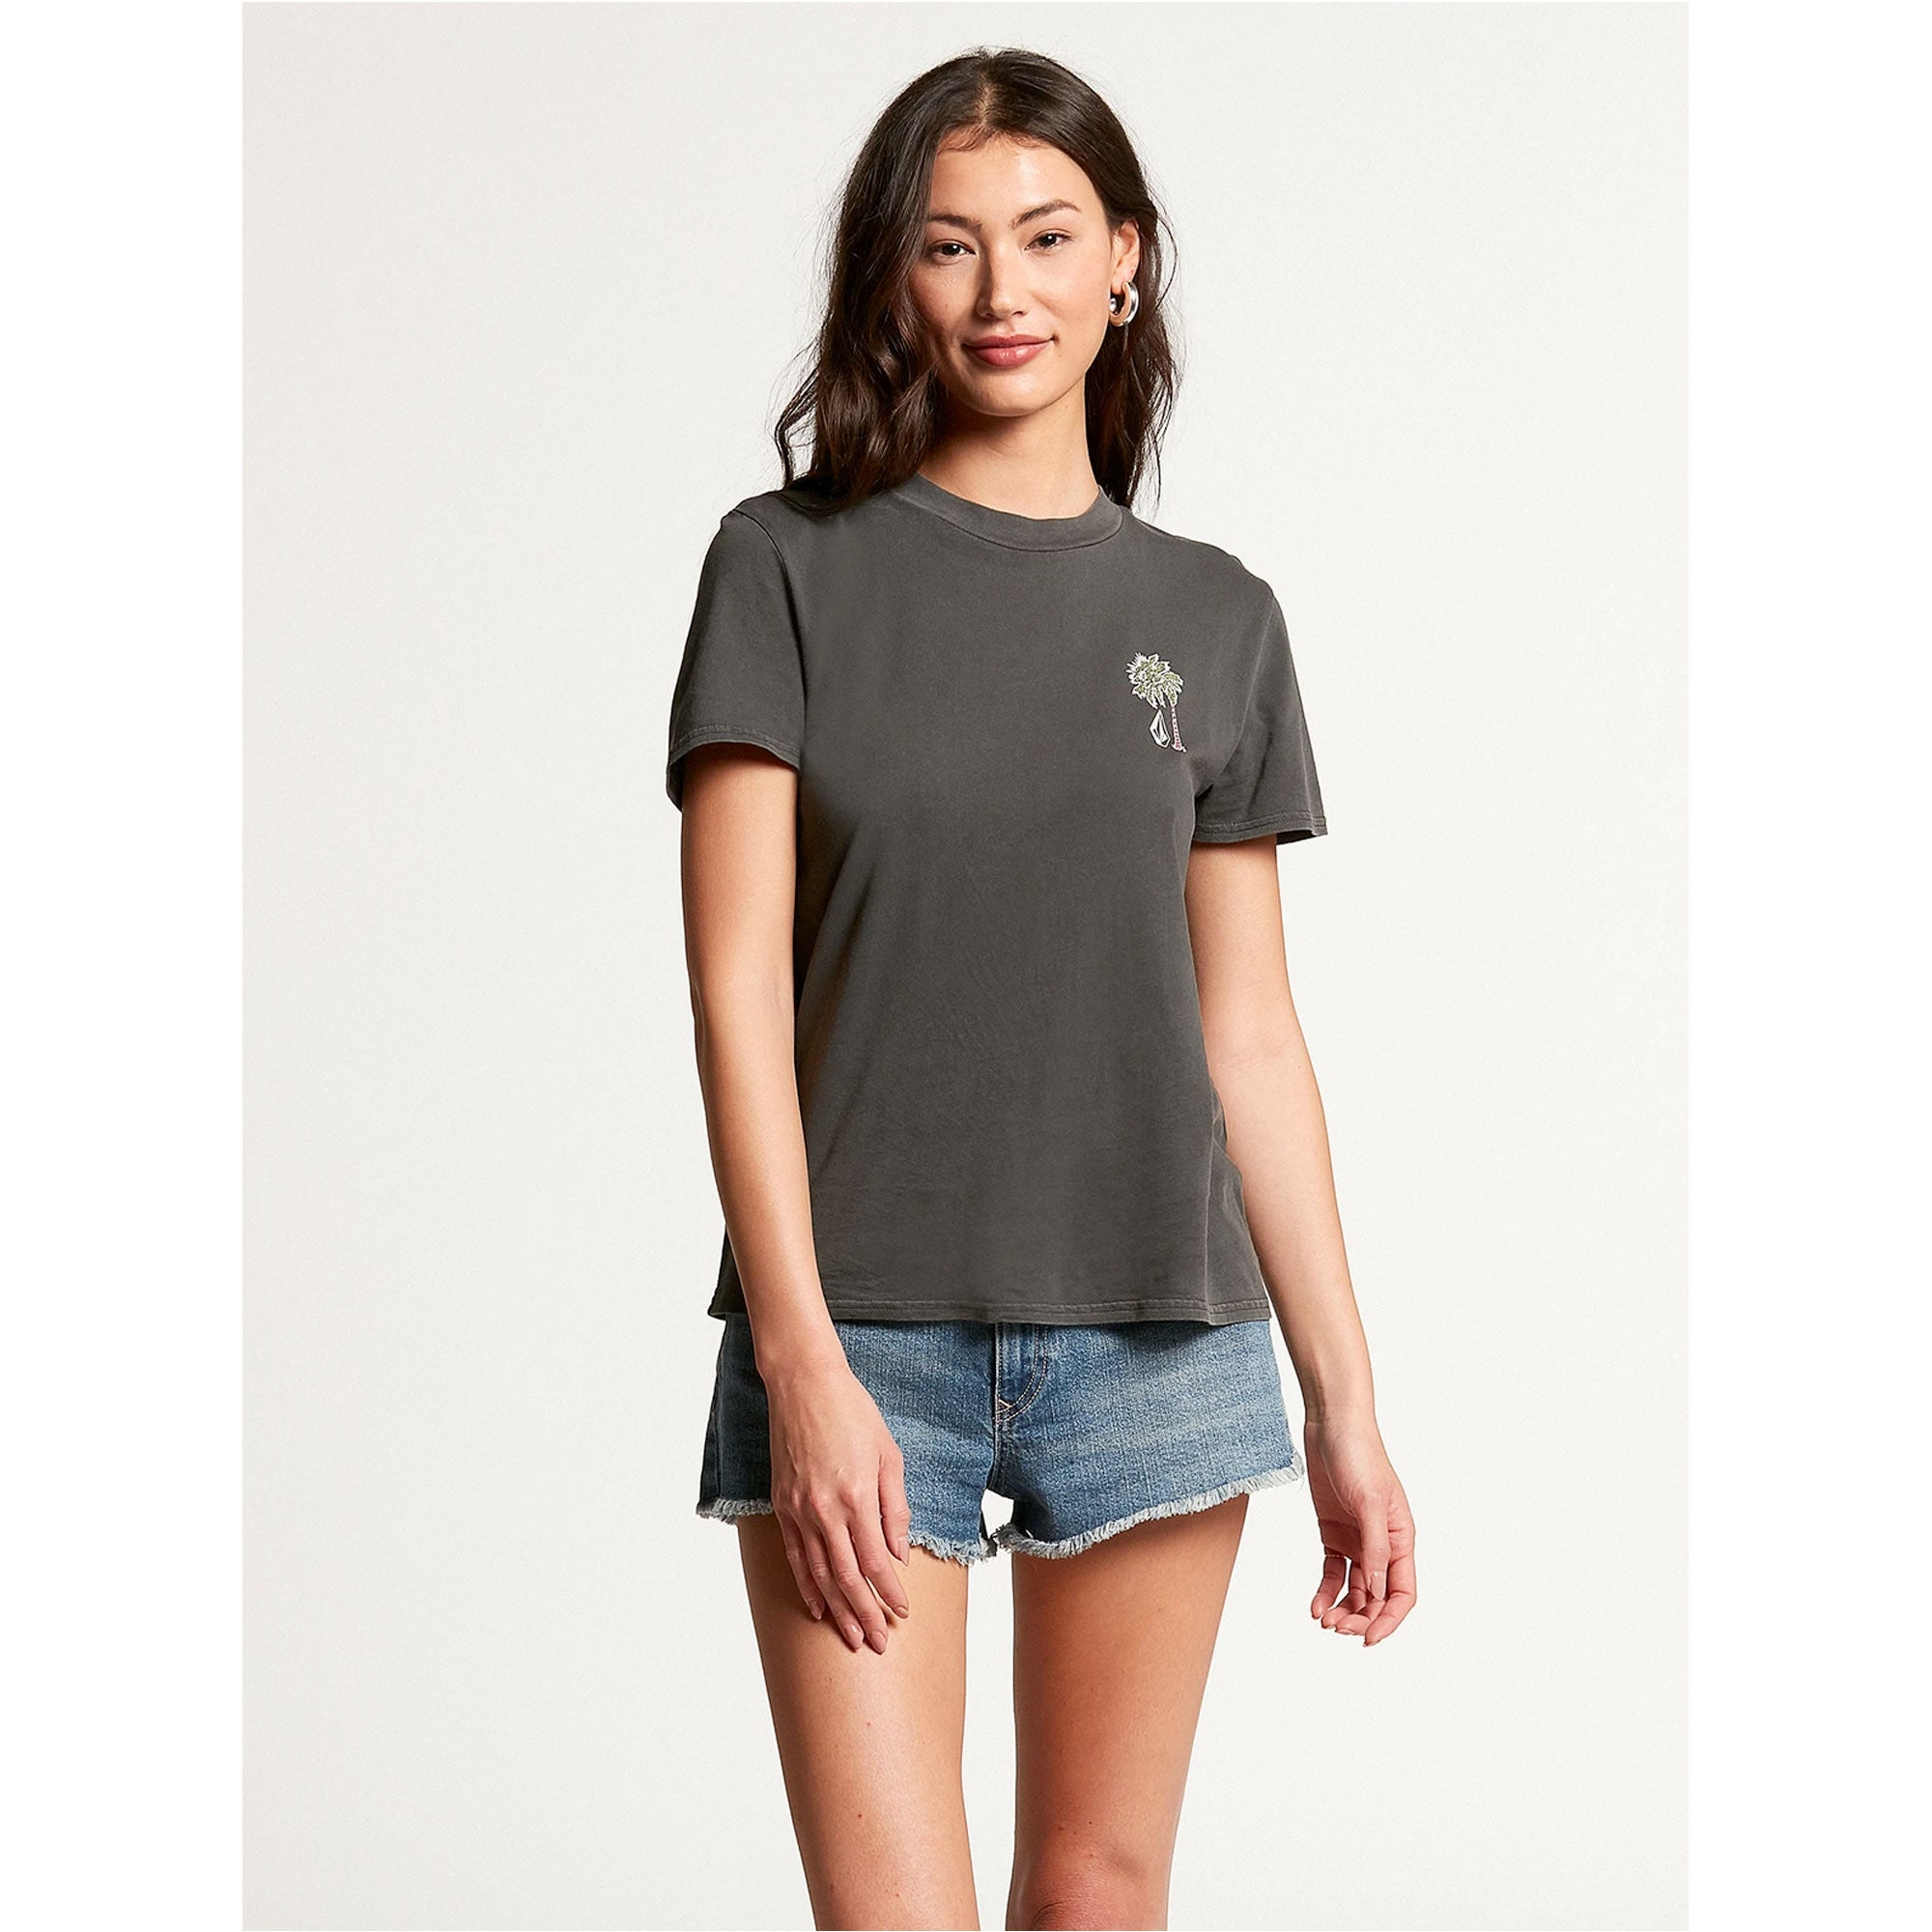 Volcom Lock It Up Women's S/S T-Shirt